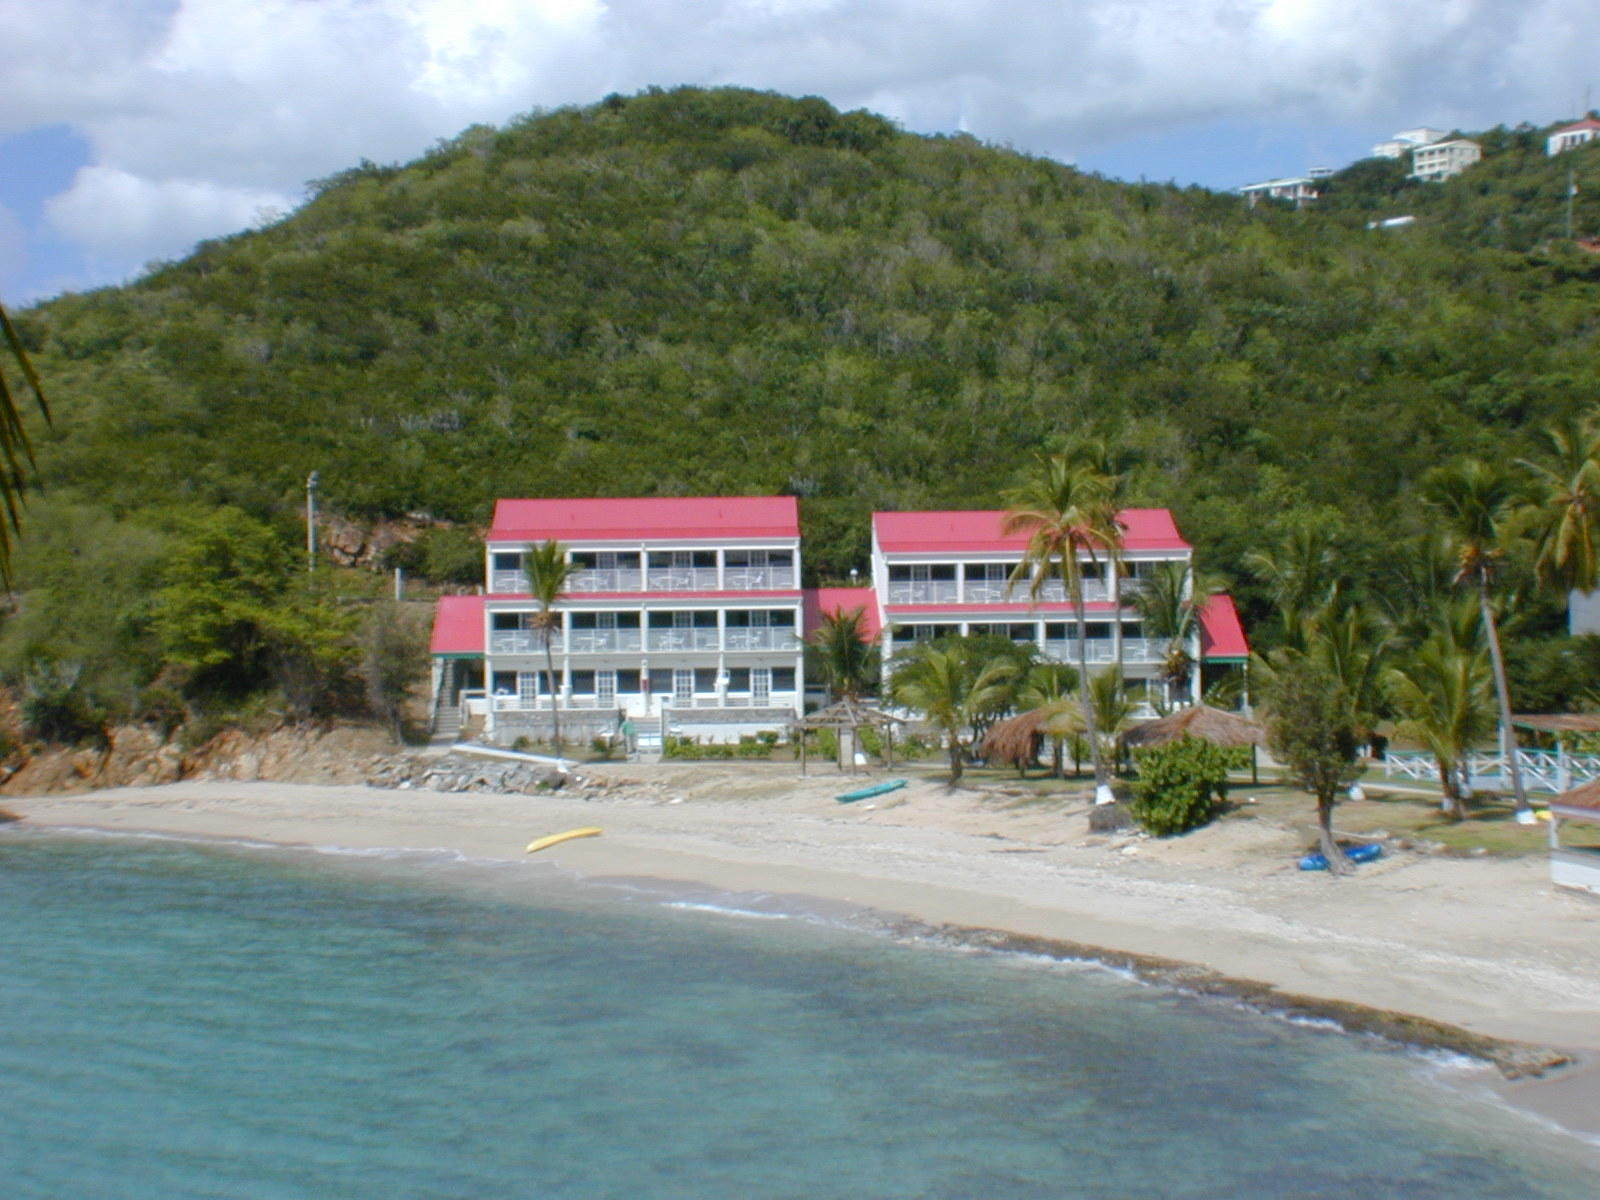 Bluebeard S Beach Club Villas Southside St Thomas Usvi Timeshare Resort Redweek